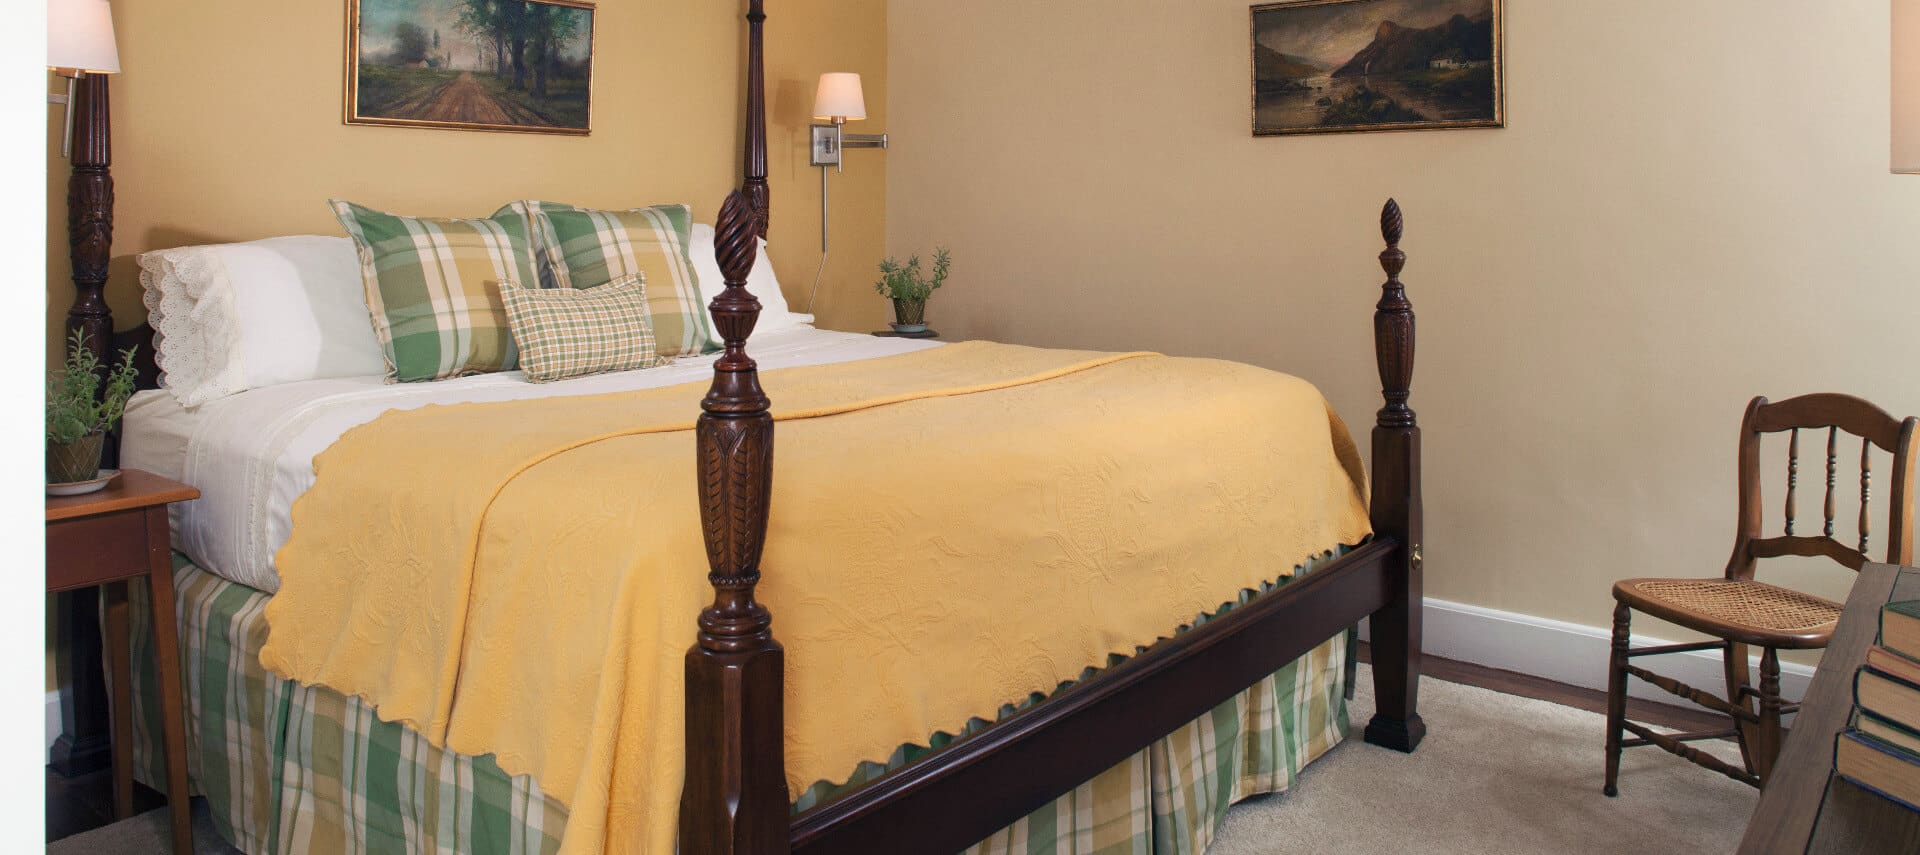 Large four-post wooden bed made up in clean linens in a roomw ith pale painted walls.